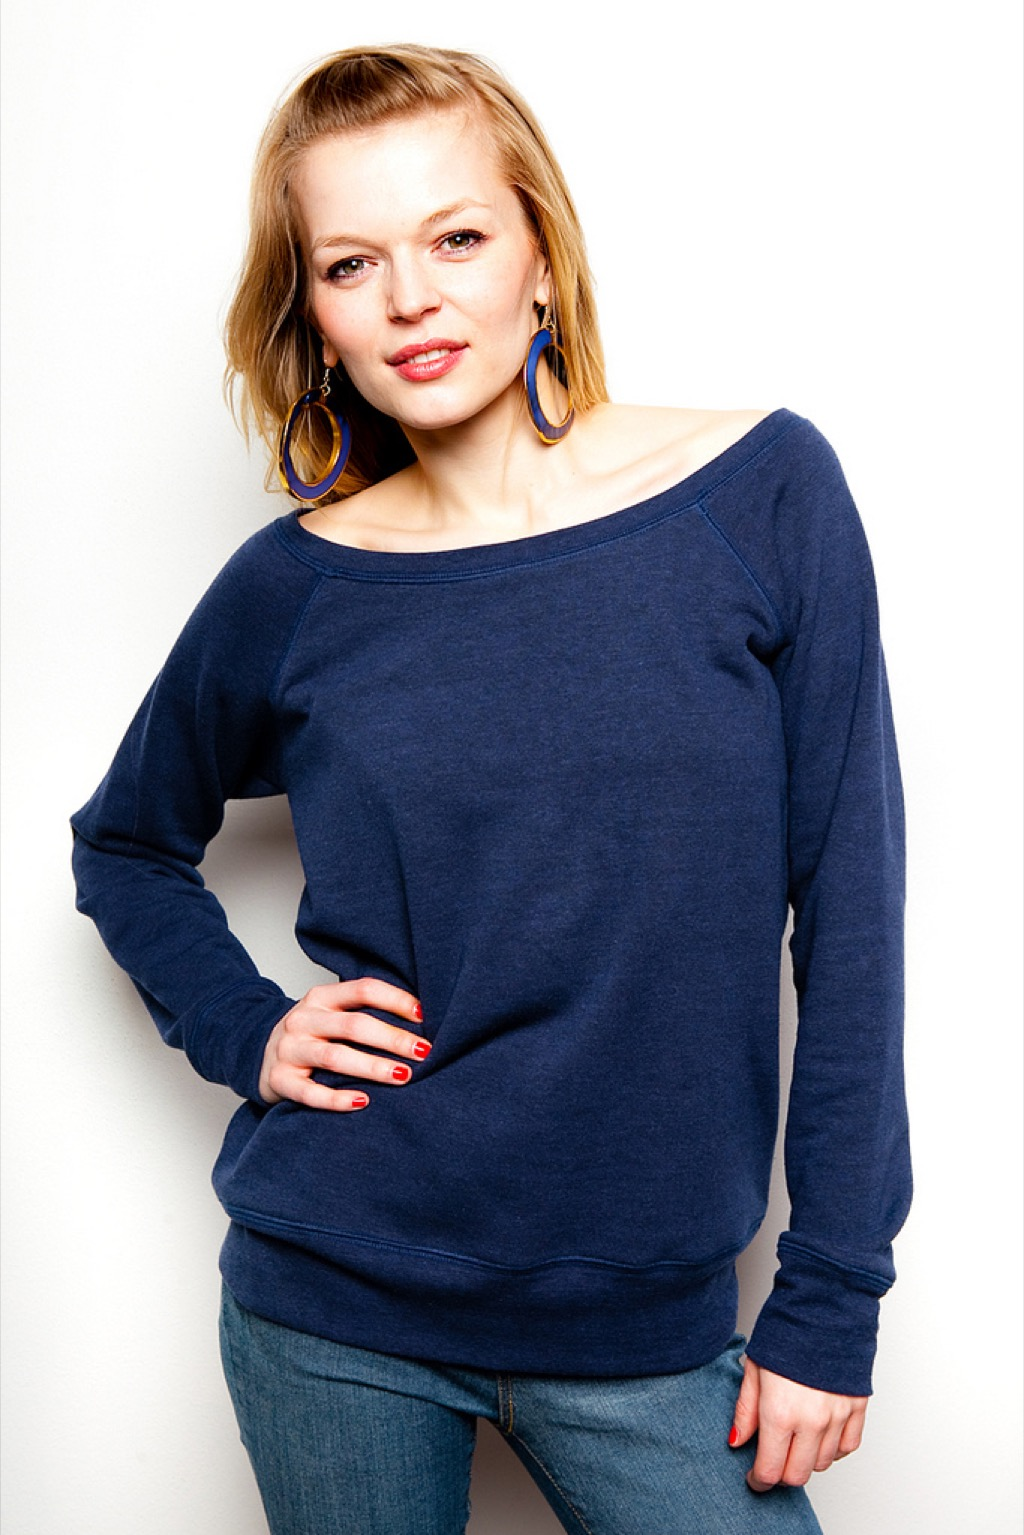 woman wearing a blue sweater - how to dress over 50